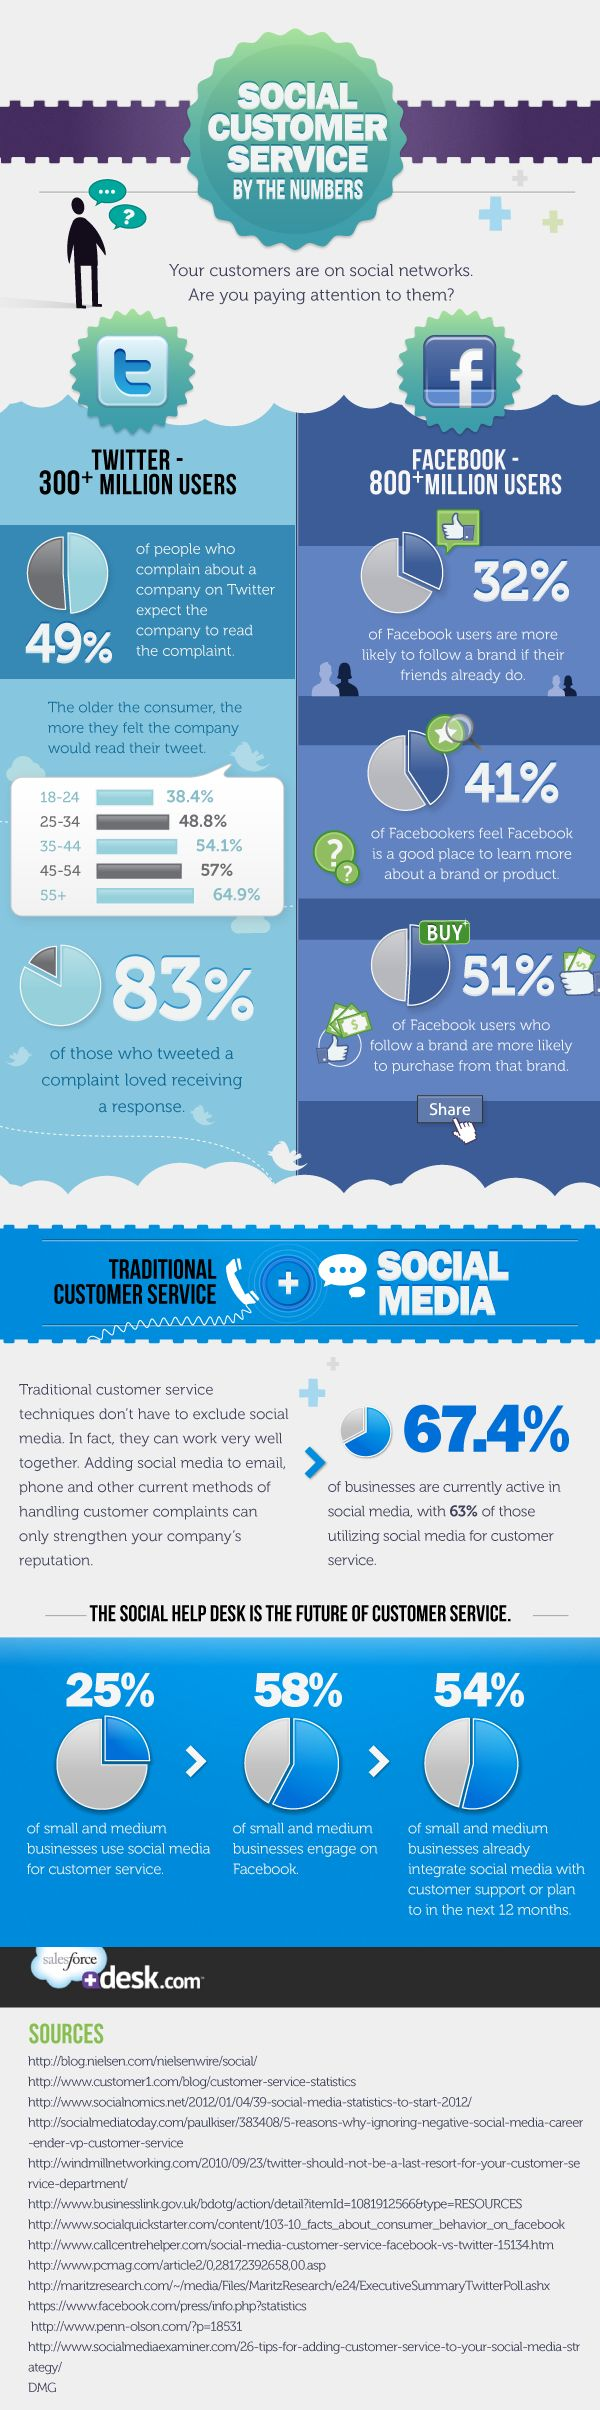 Social Customer Service by the Numbers